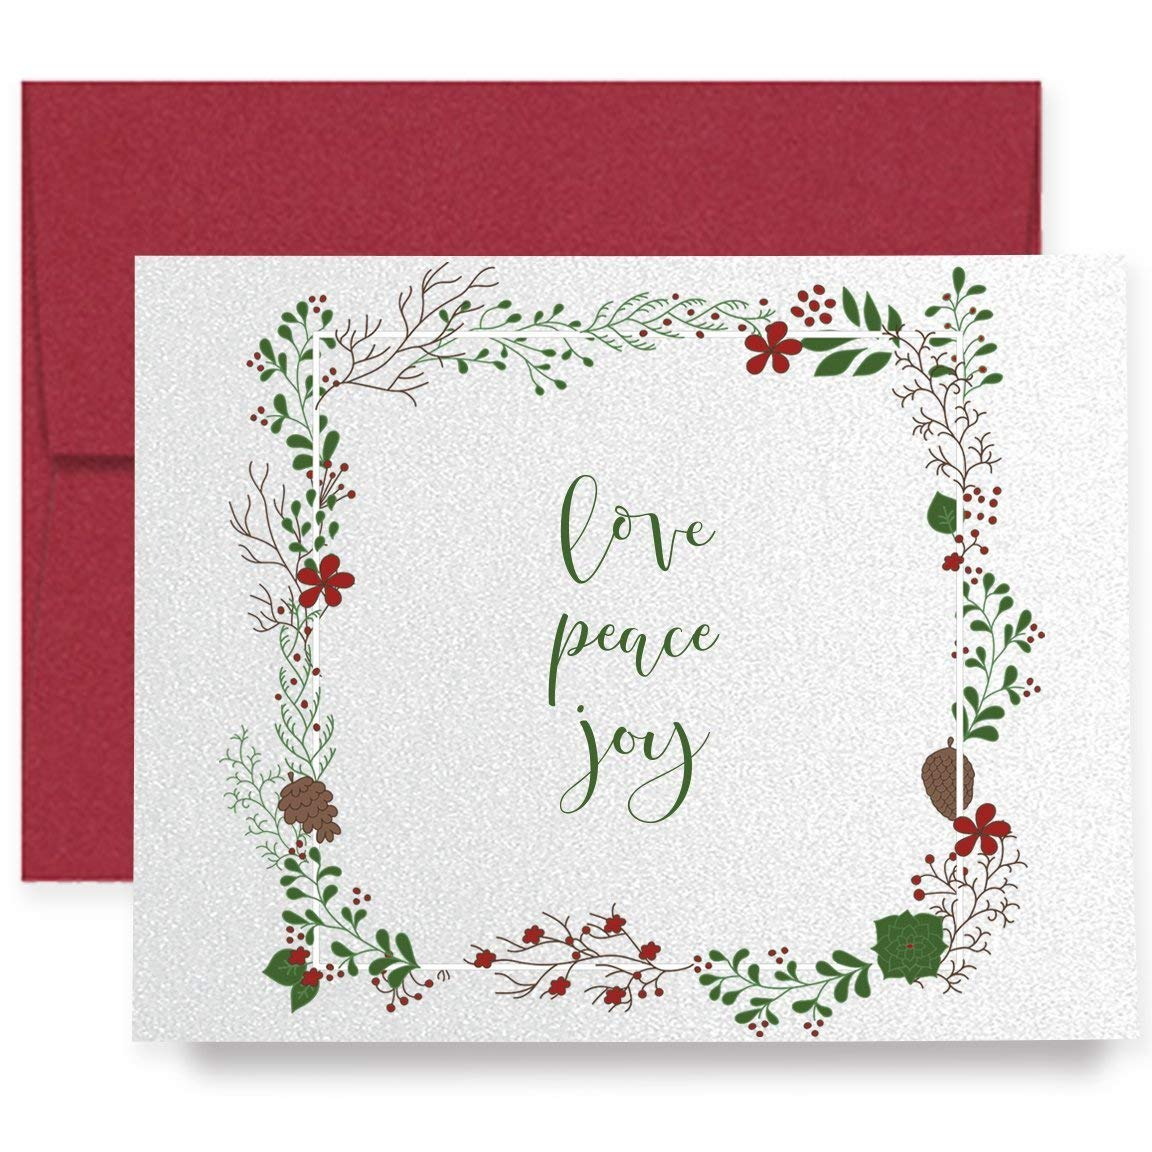 Buy Peace Joy Love Christmas Cards Box Set 16 Cards and 16 Envelopes ...